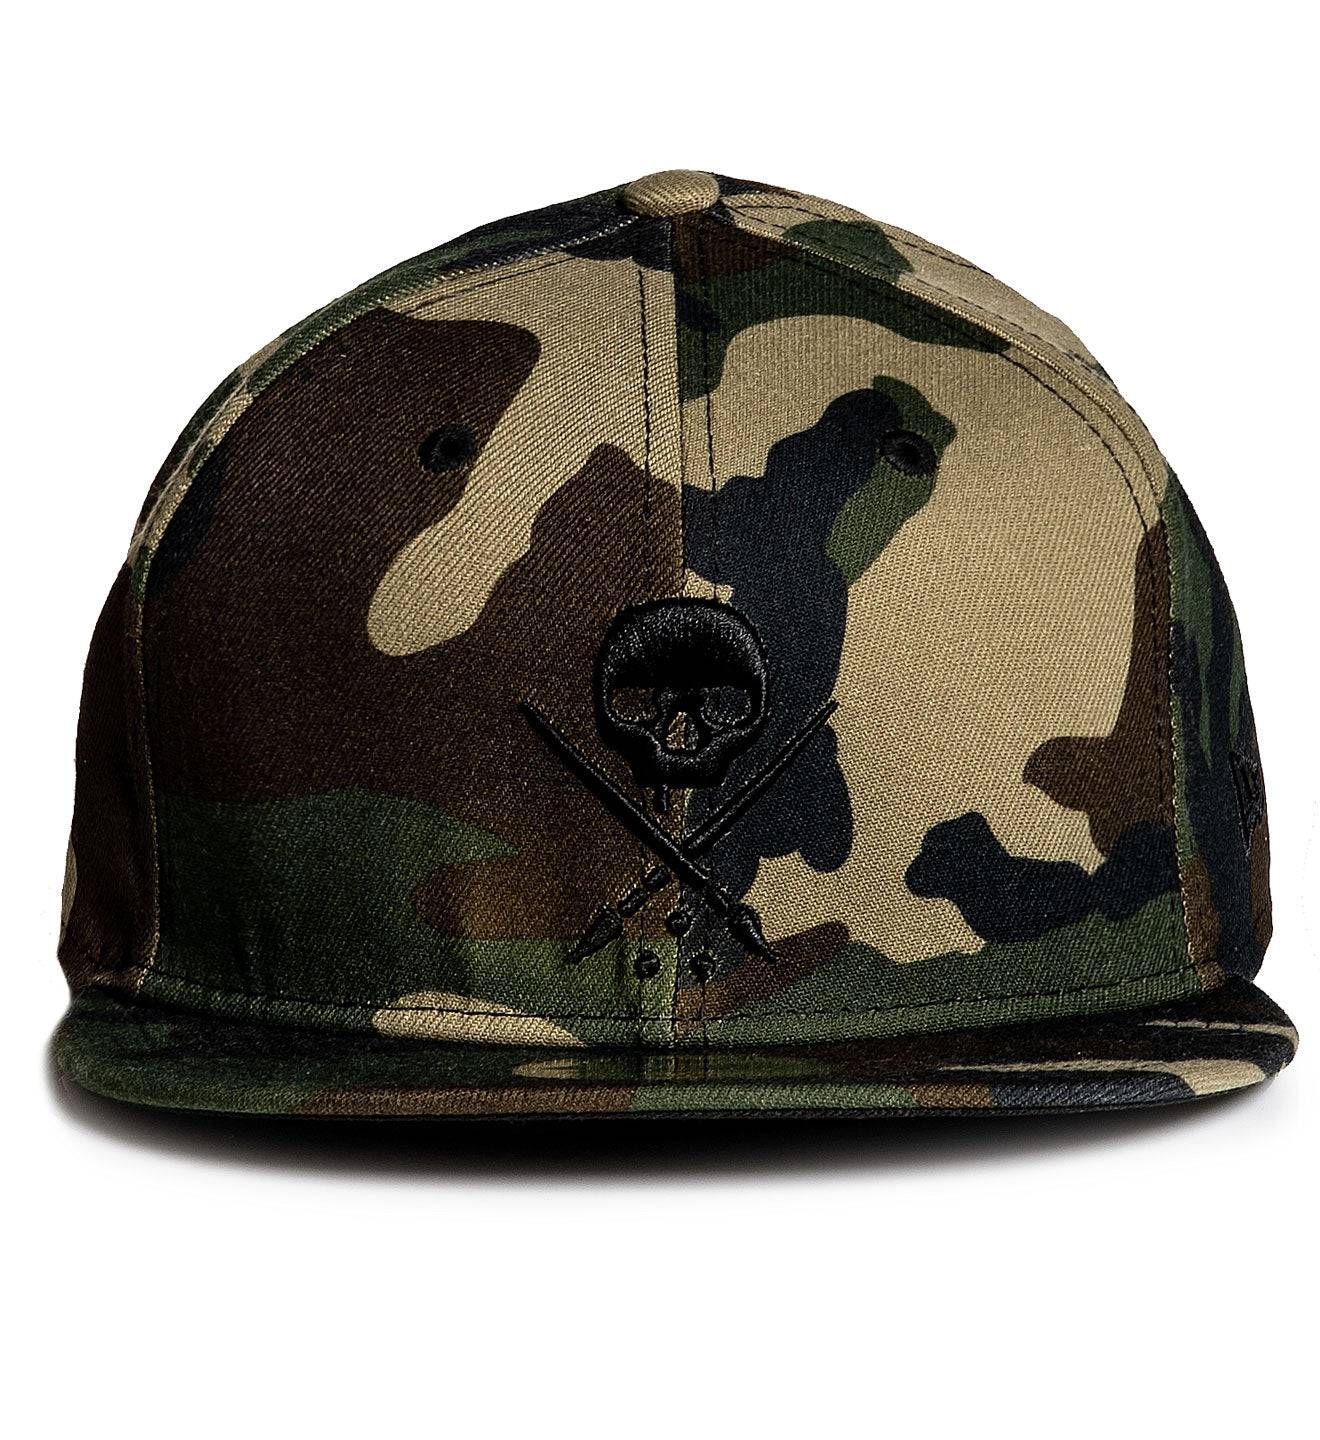 Mens Fitted Badge Stretched Camo, CAMO / 71/4